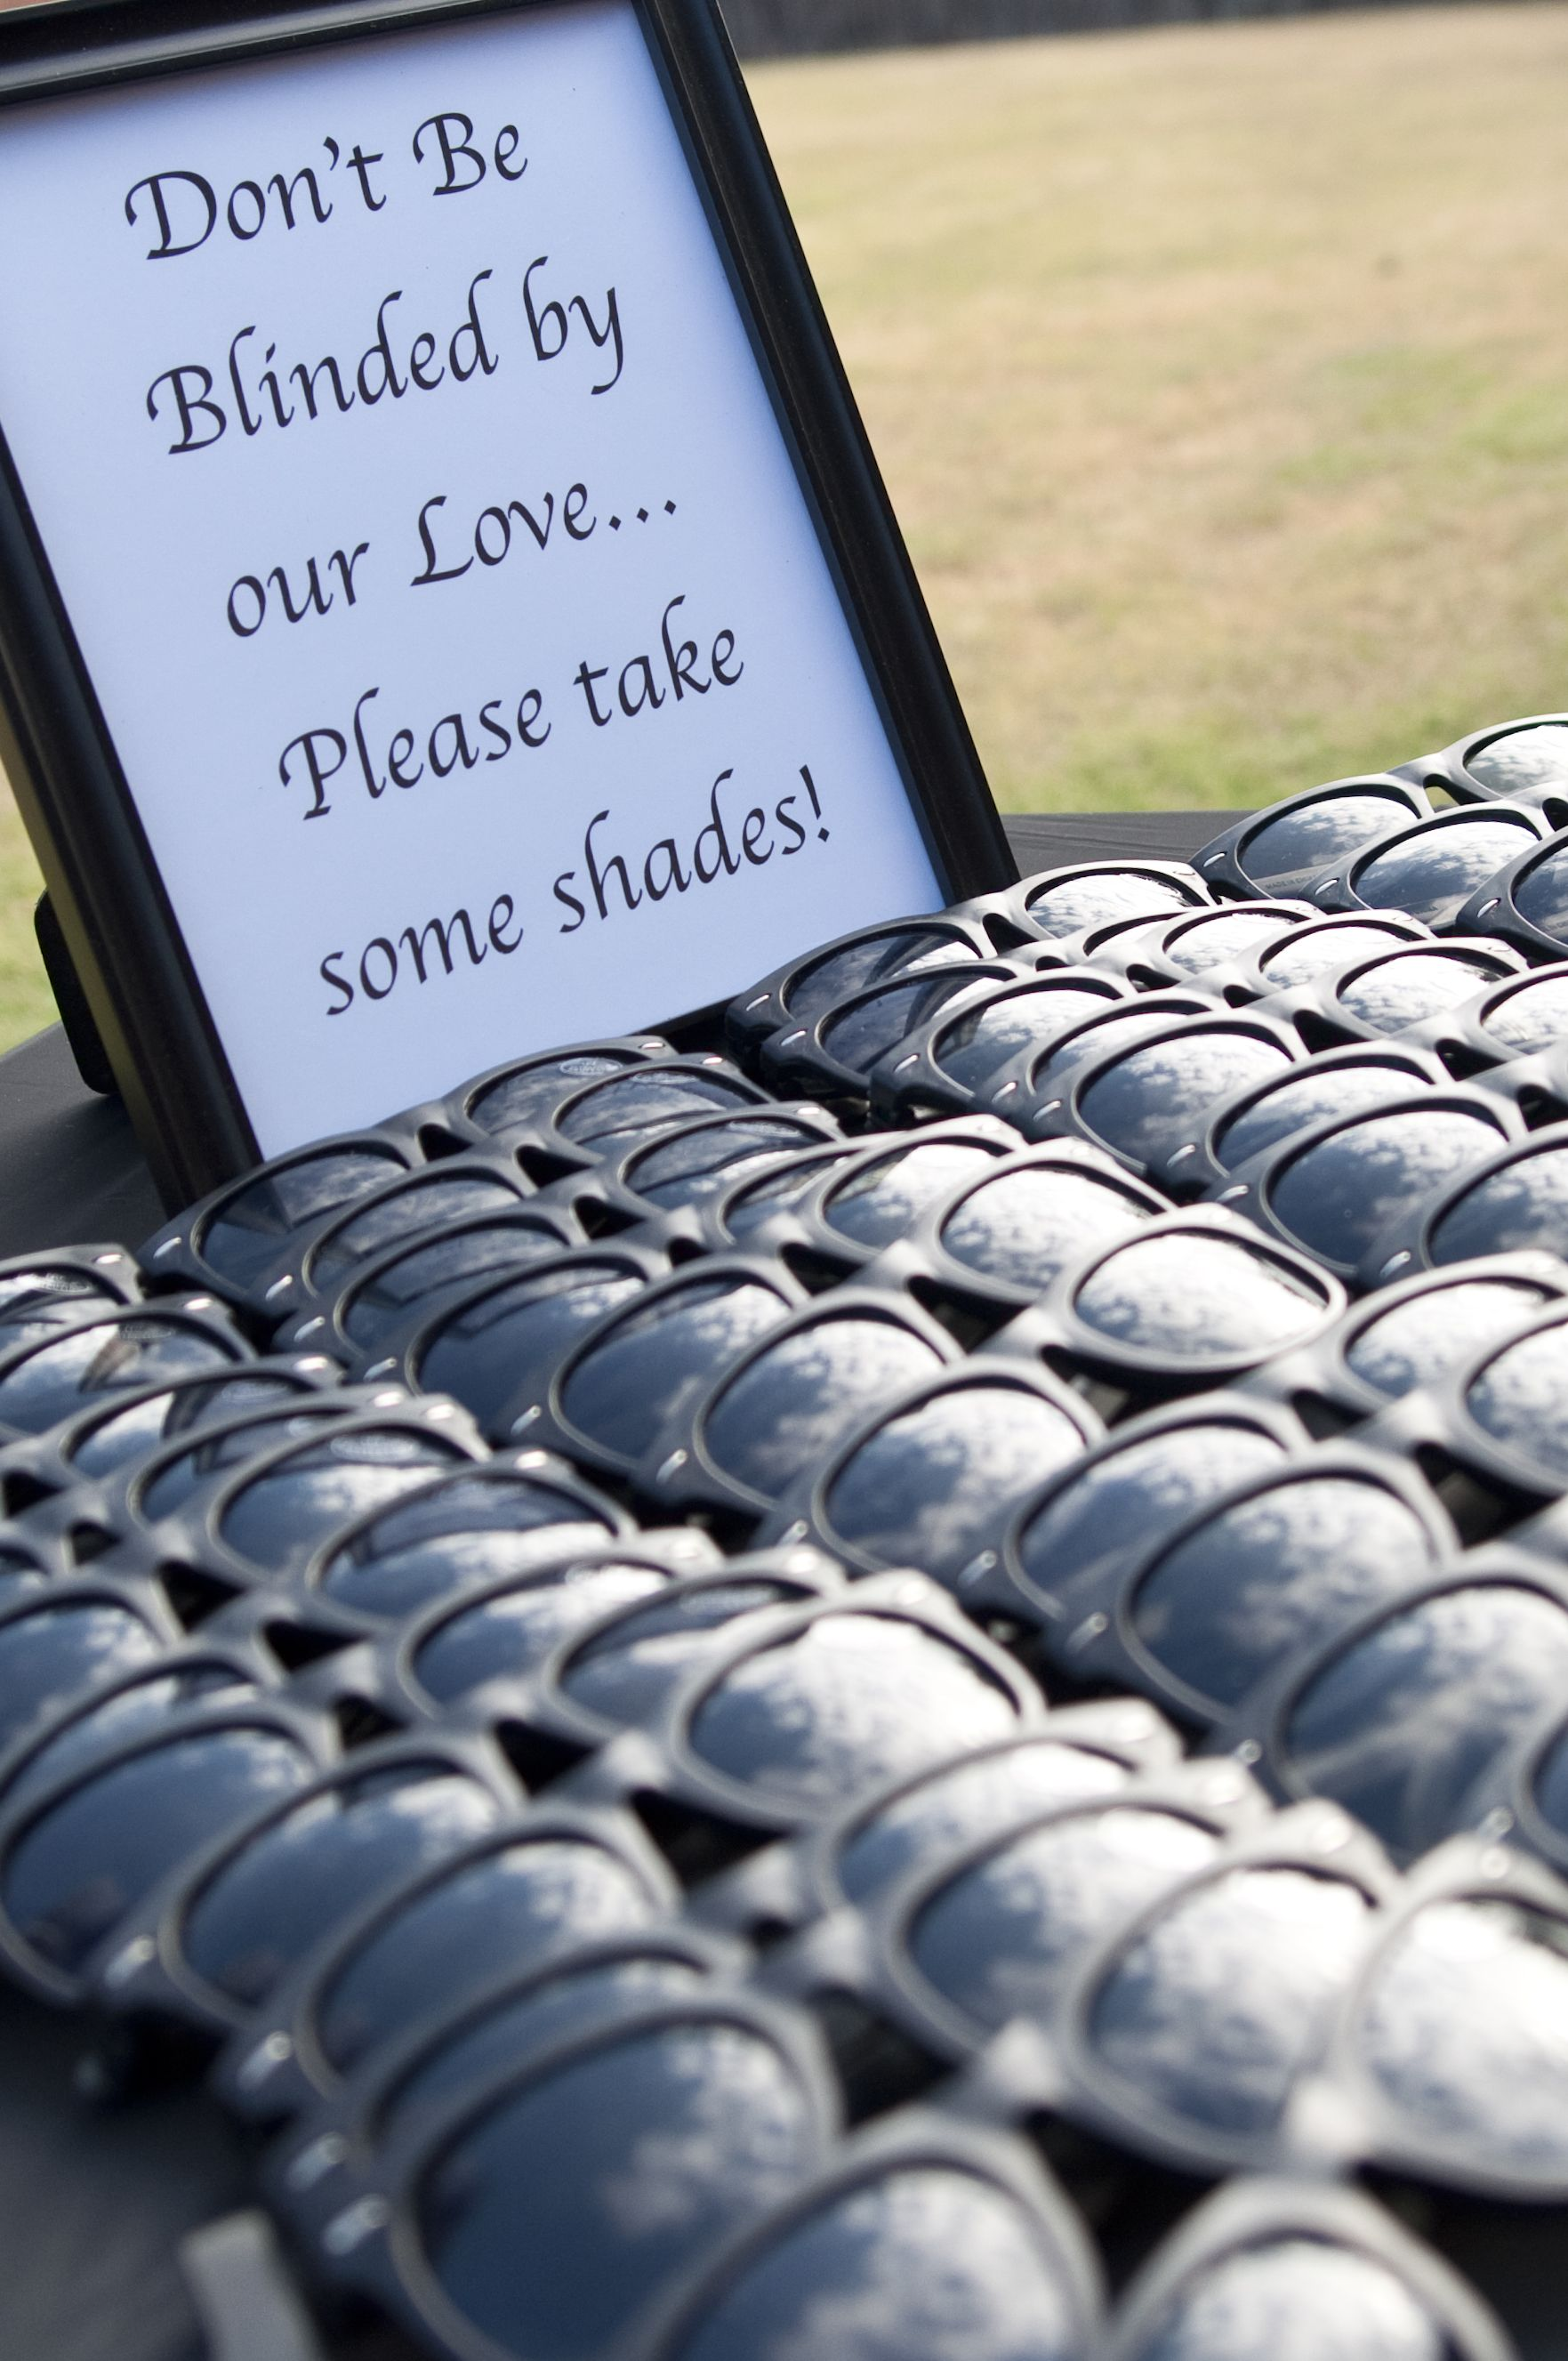 Such a great idea for outdoor weddings.